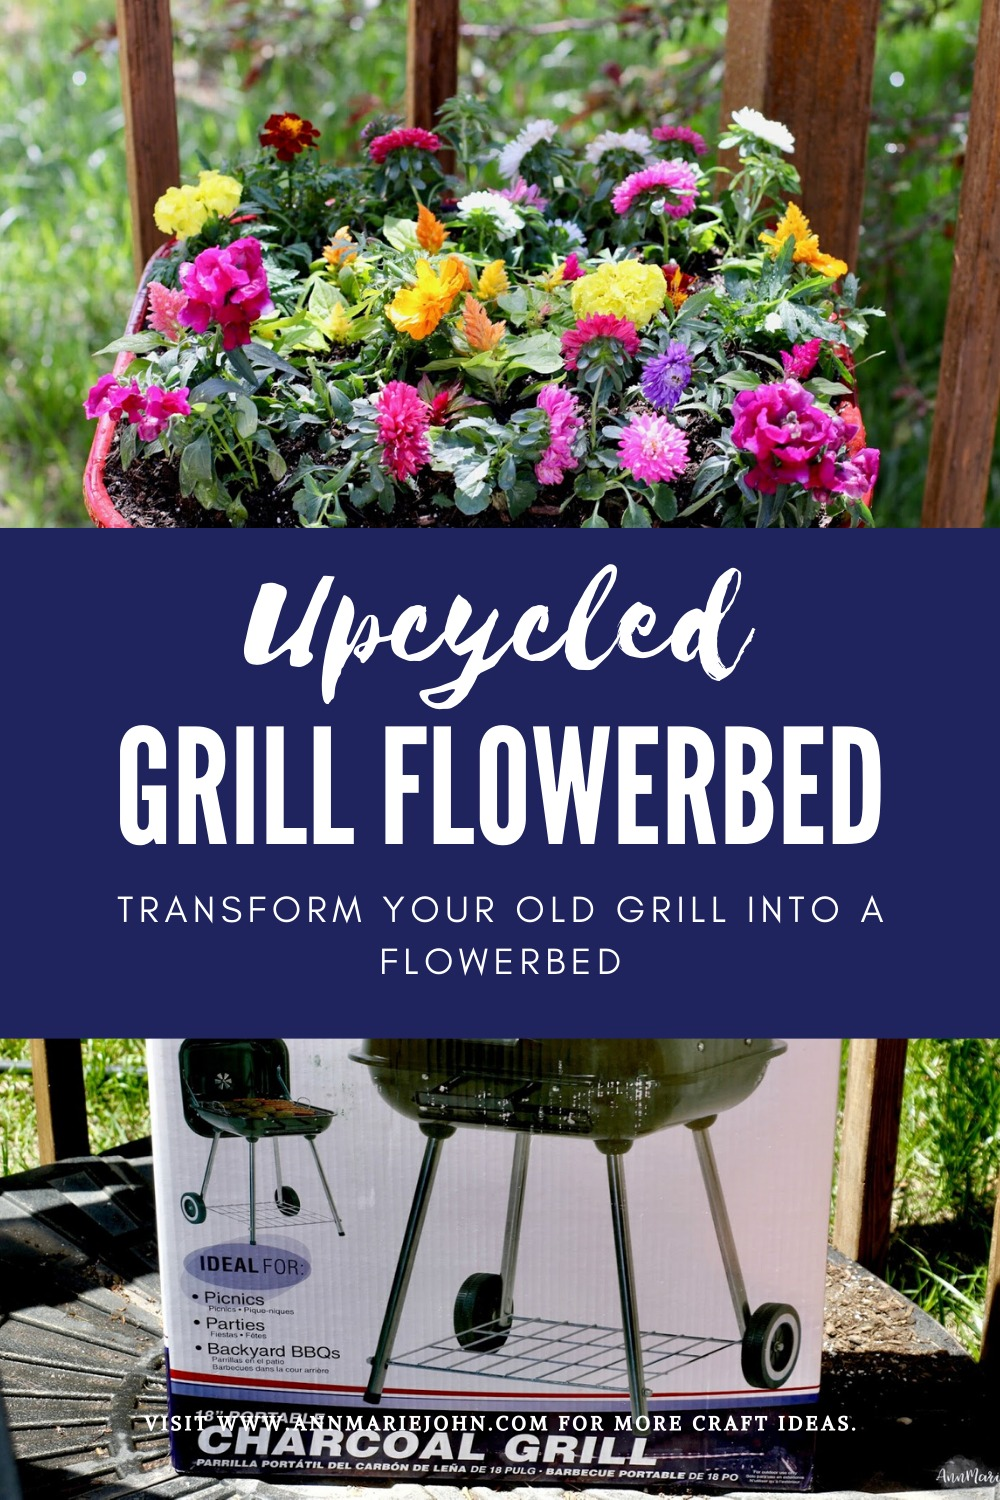 Upcycled Grill Flowerbed - Transform your old grill into a flowerbed